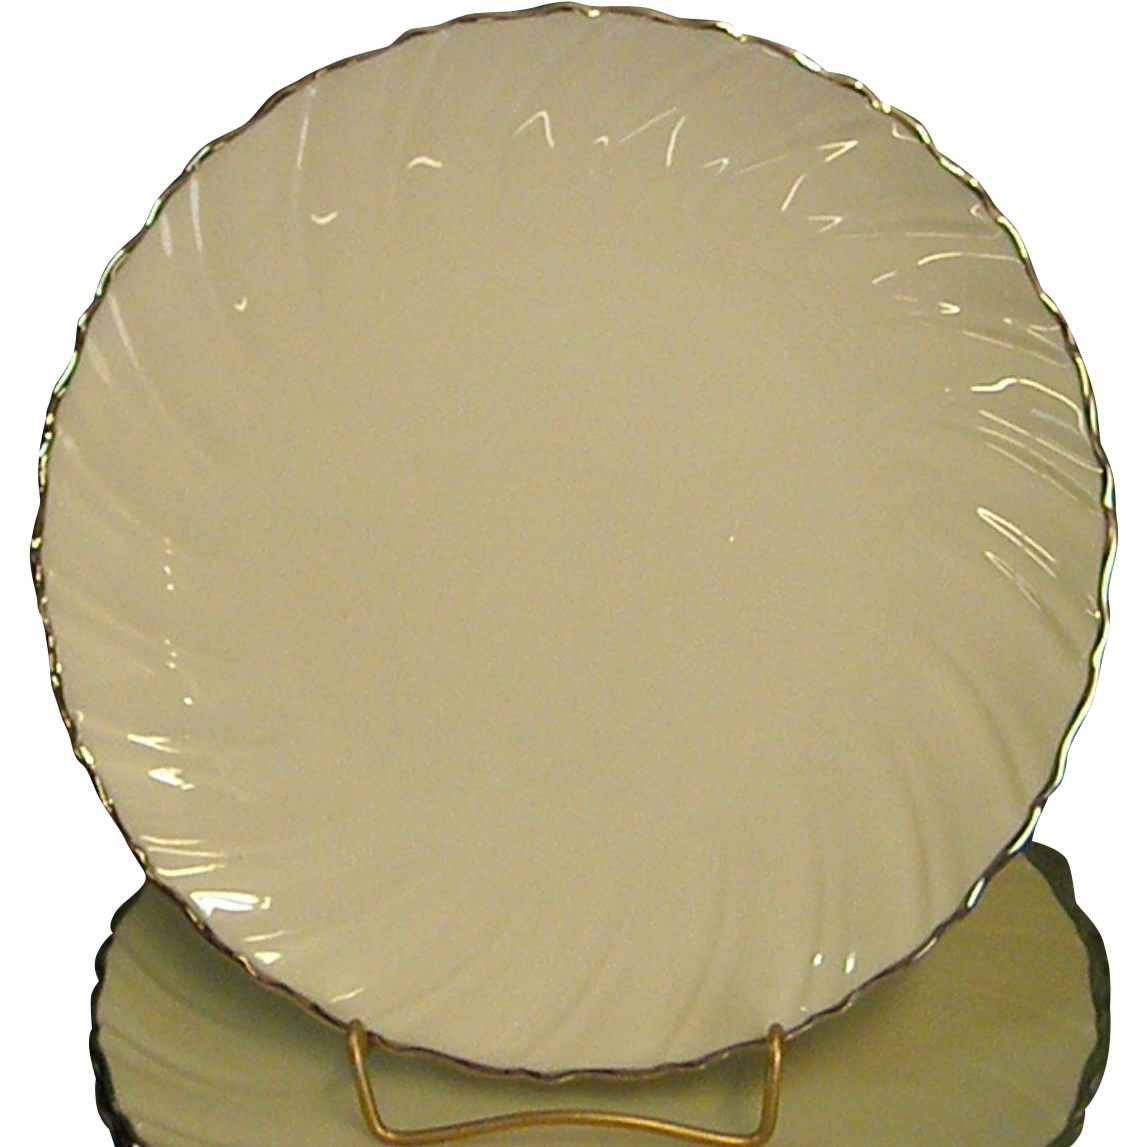 Classic Lenox China Weatherly Salad Plates From